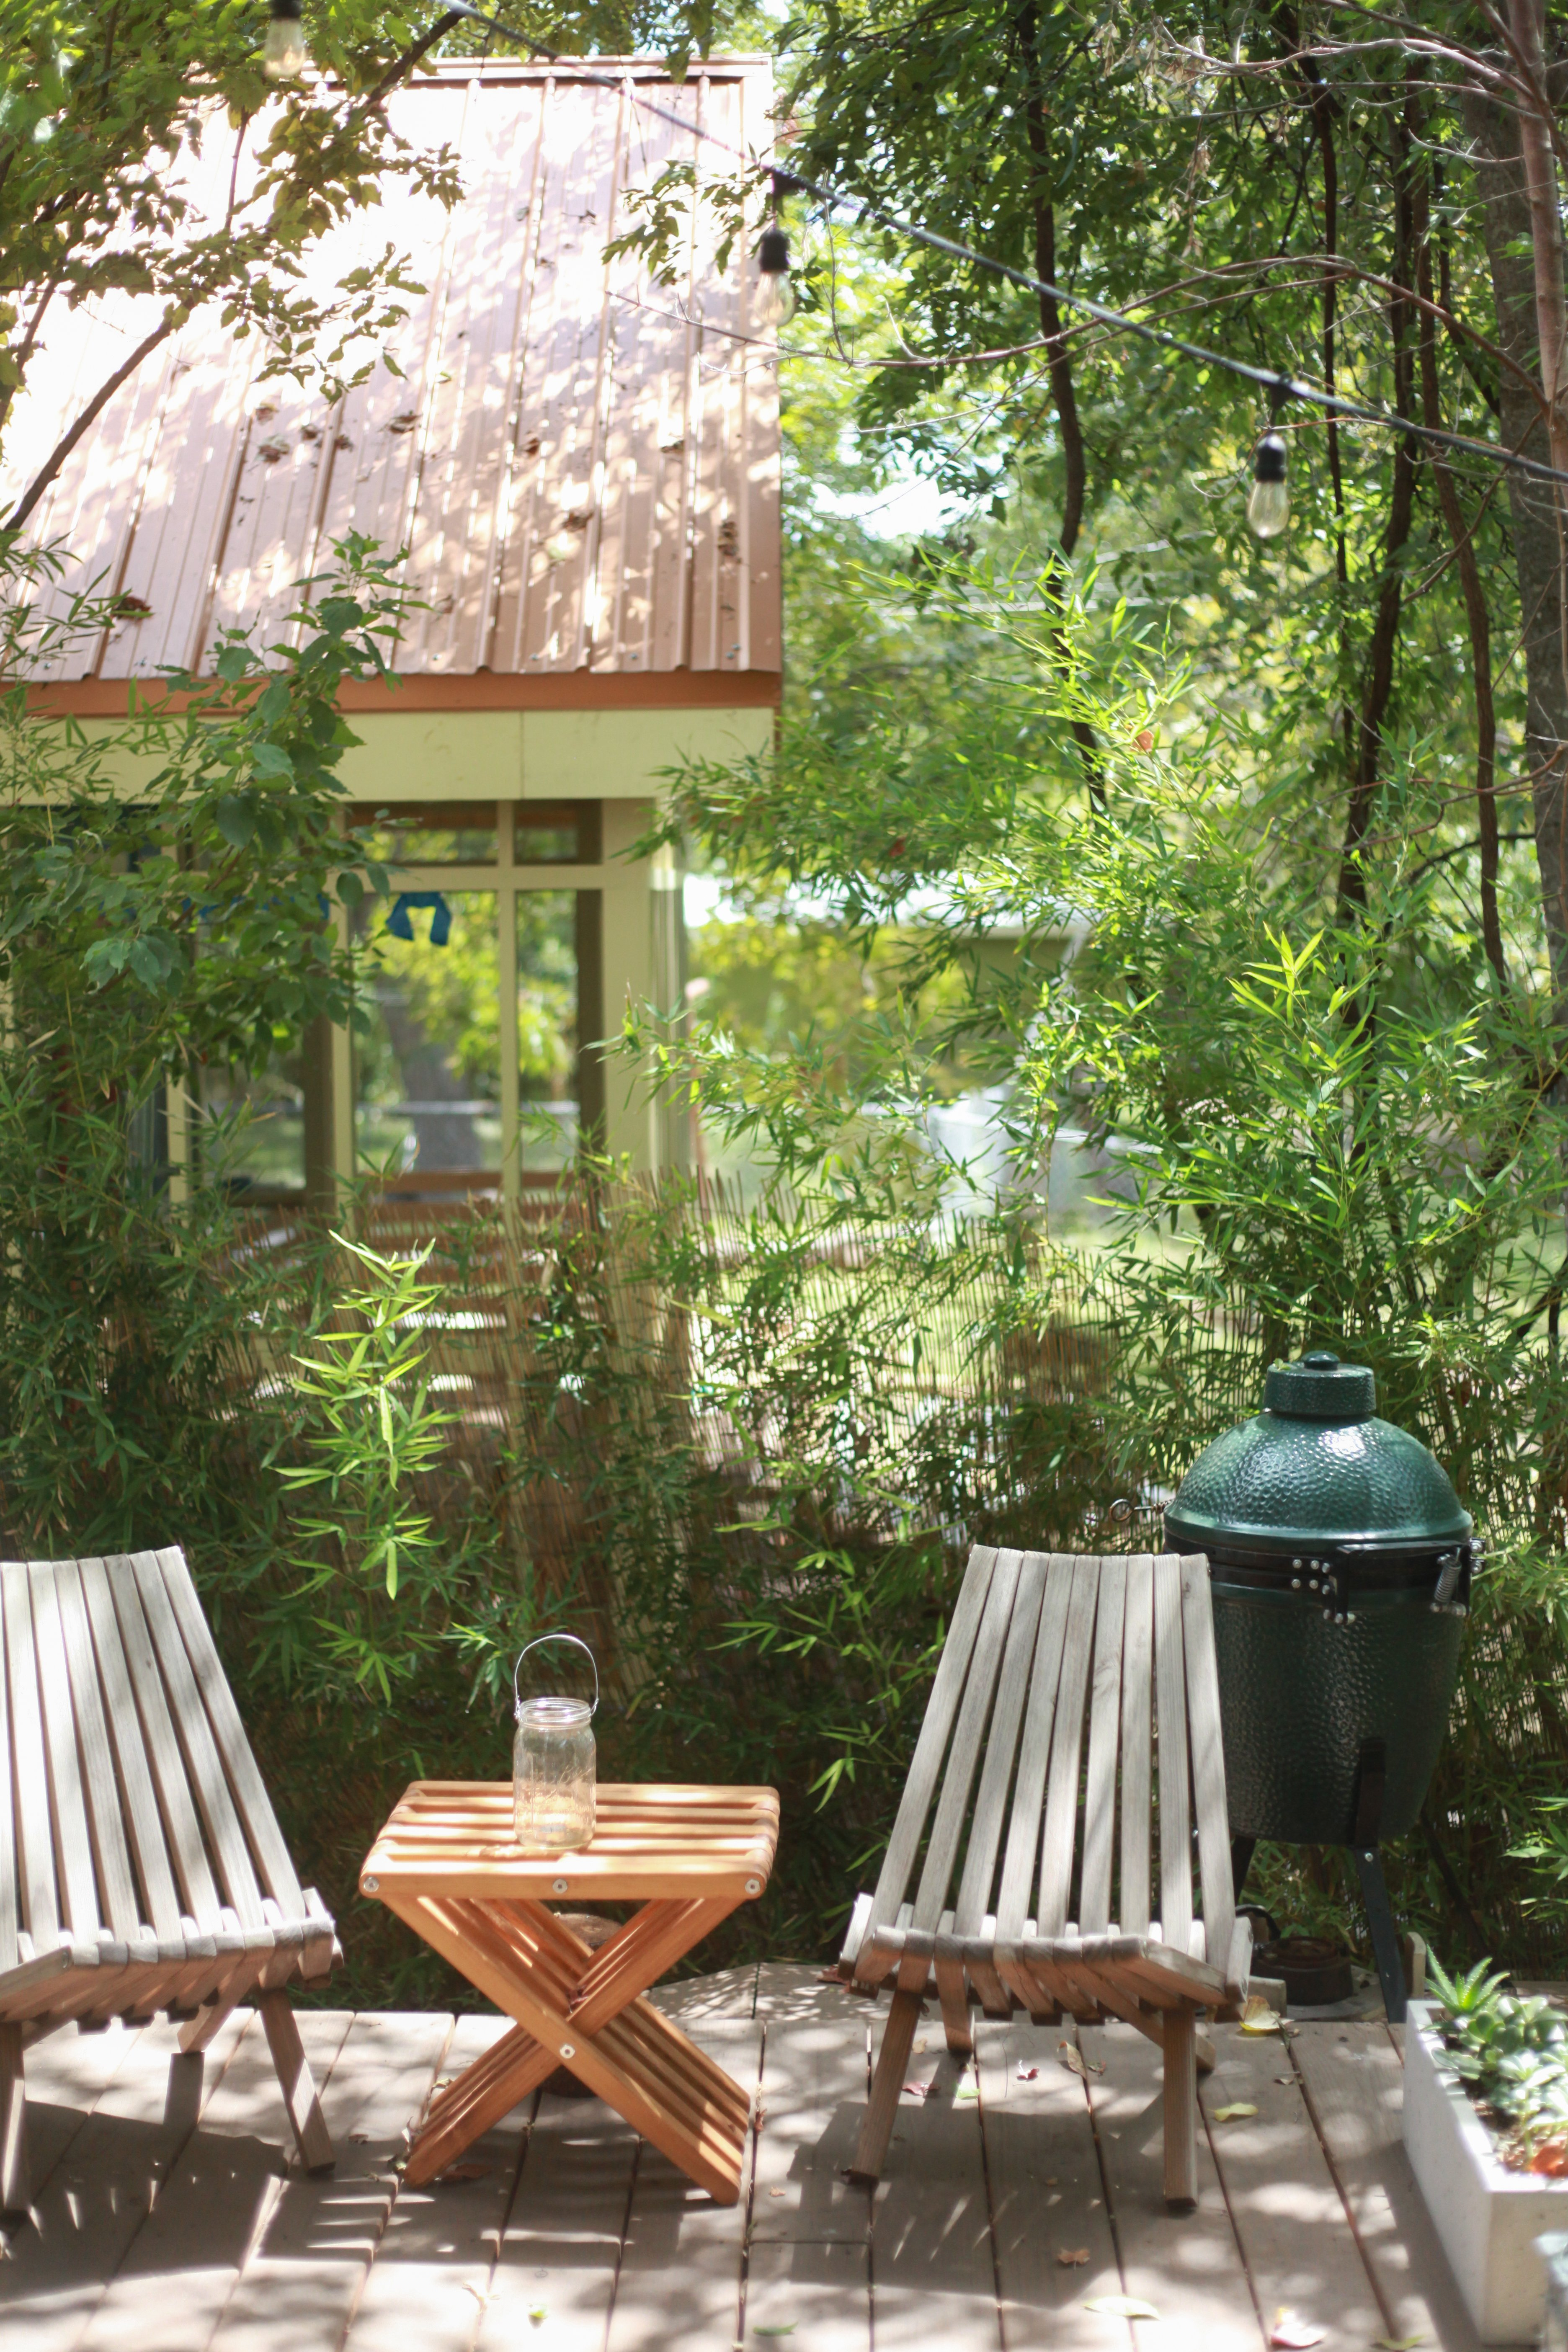 Temporary Outdoor Accessories & Decor for Renters  Apartment Therapy